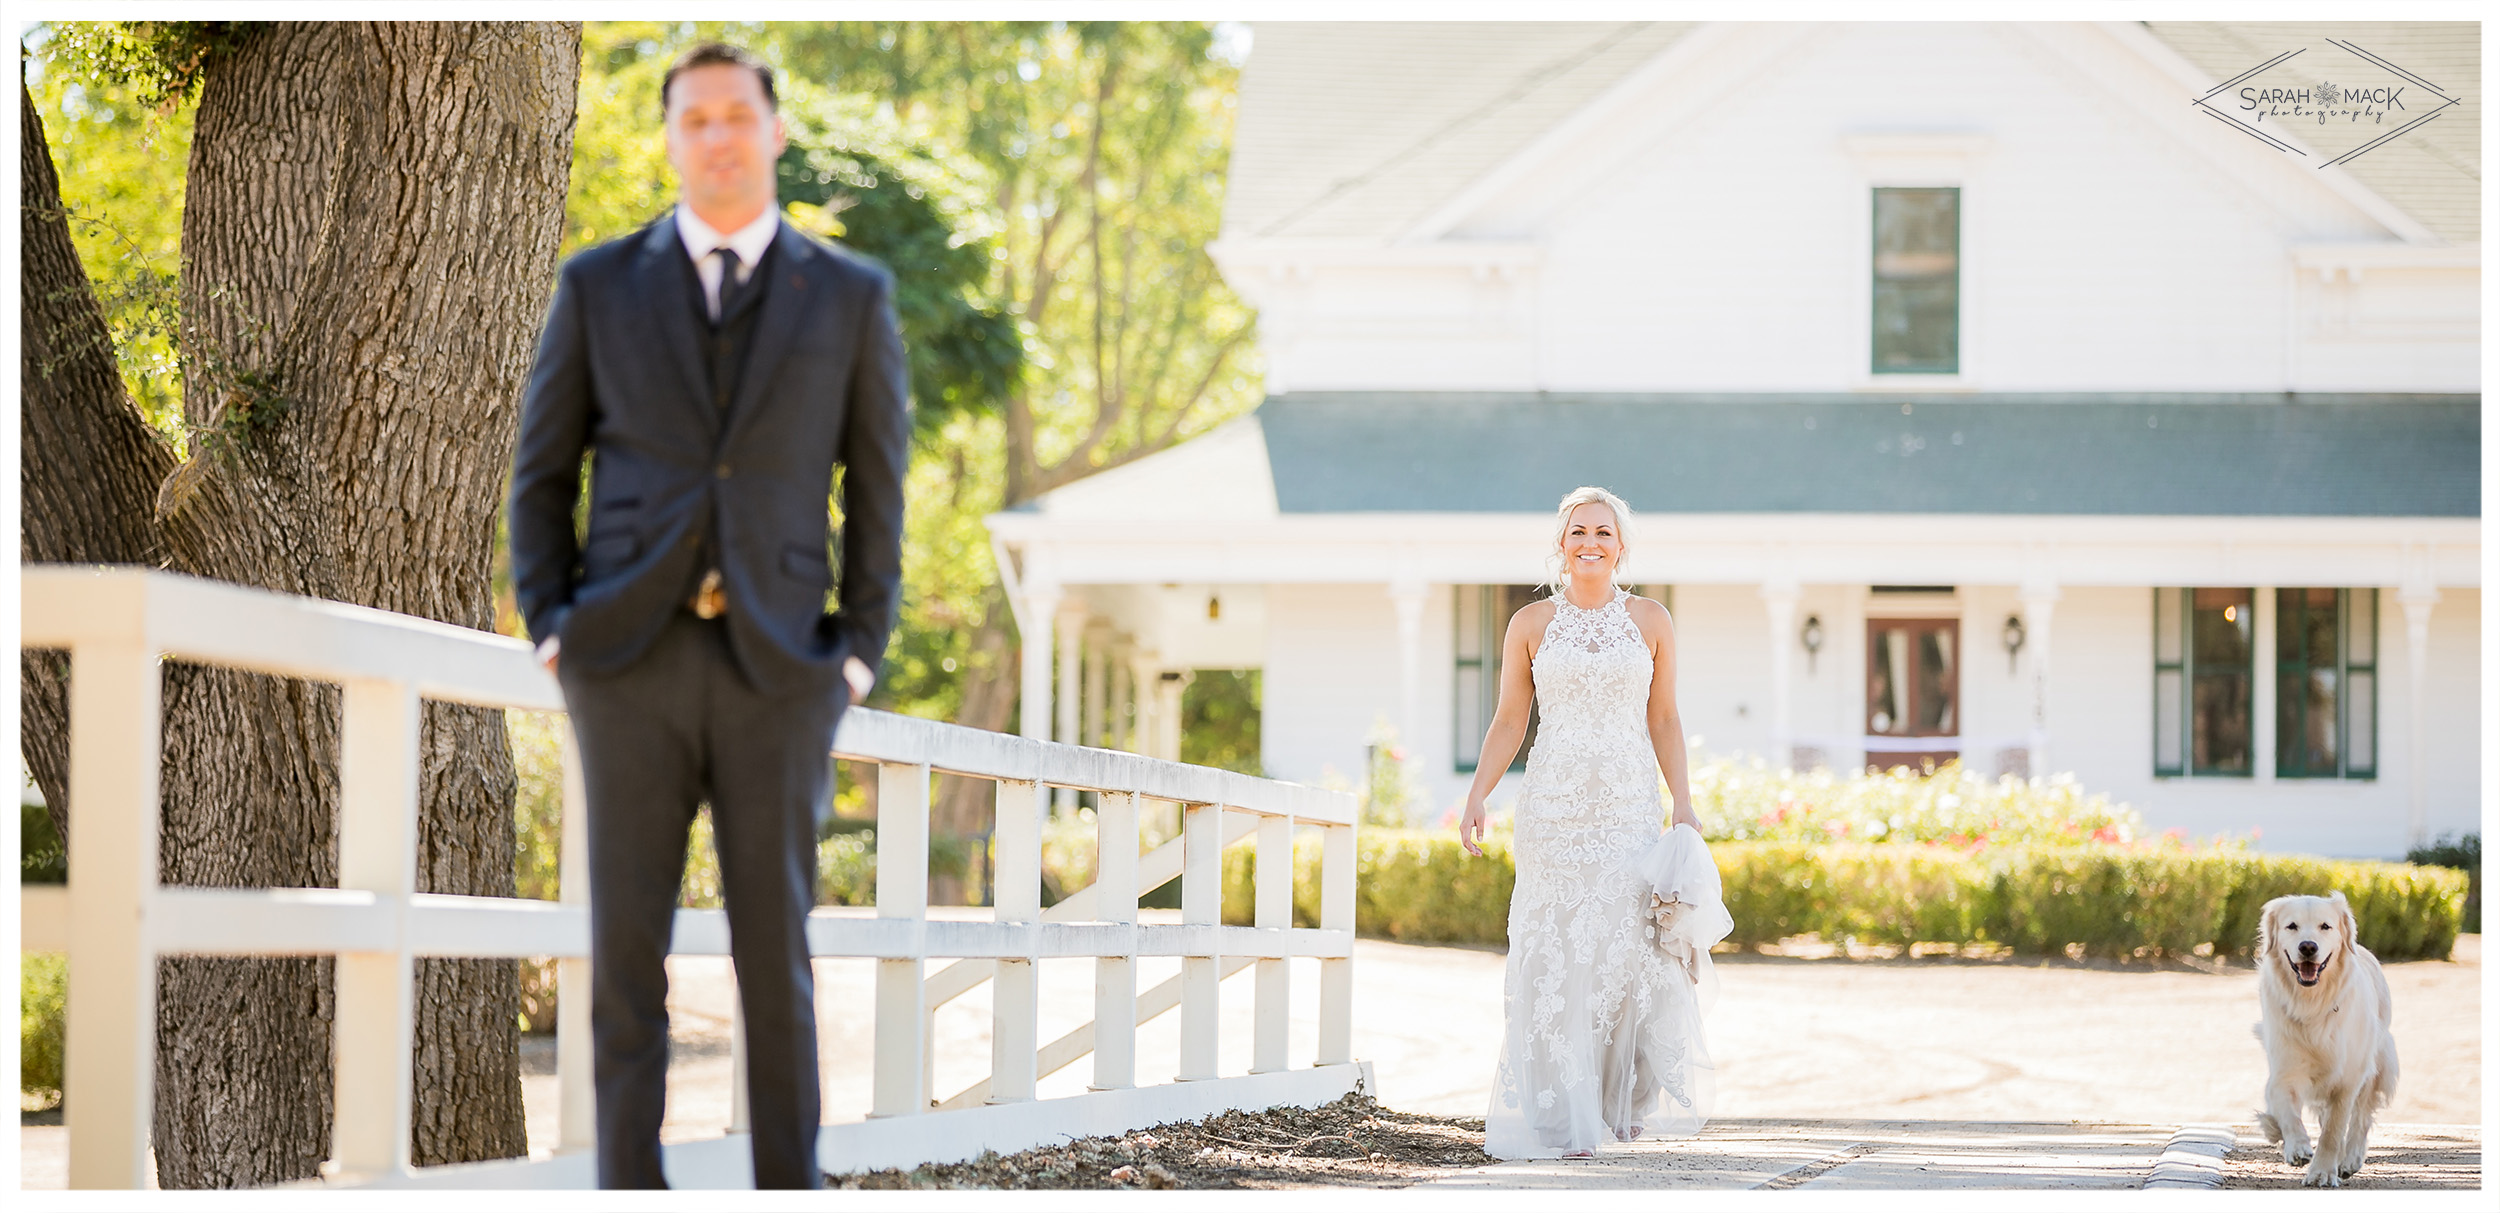 MA-Chandler-Ranch-Paso-Robles-Wedding-Photography-33.jpg